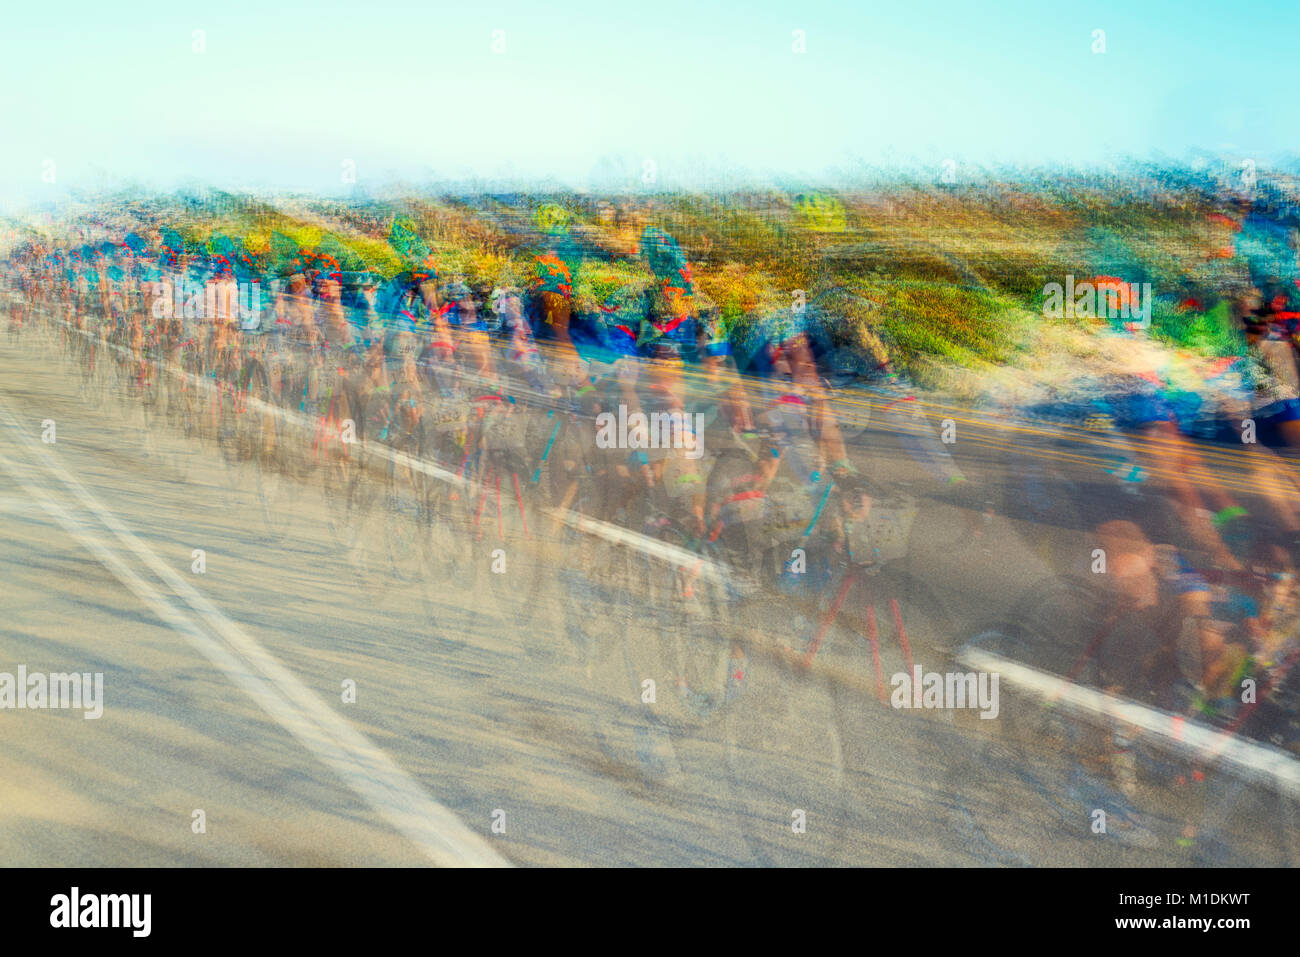 Group of cyclists on the road. The photo was created using multiple exposure technique. - Stock Image